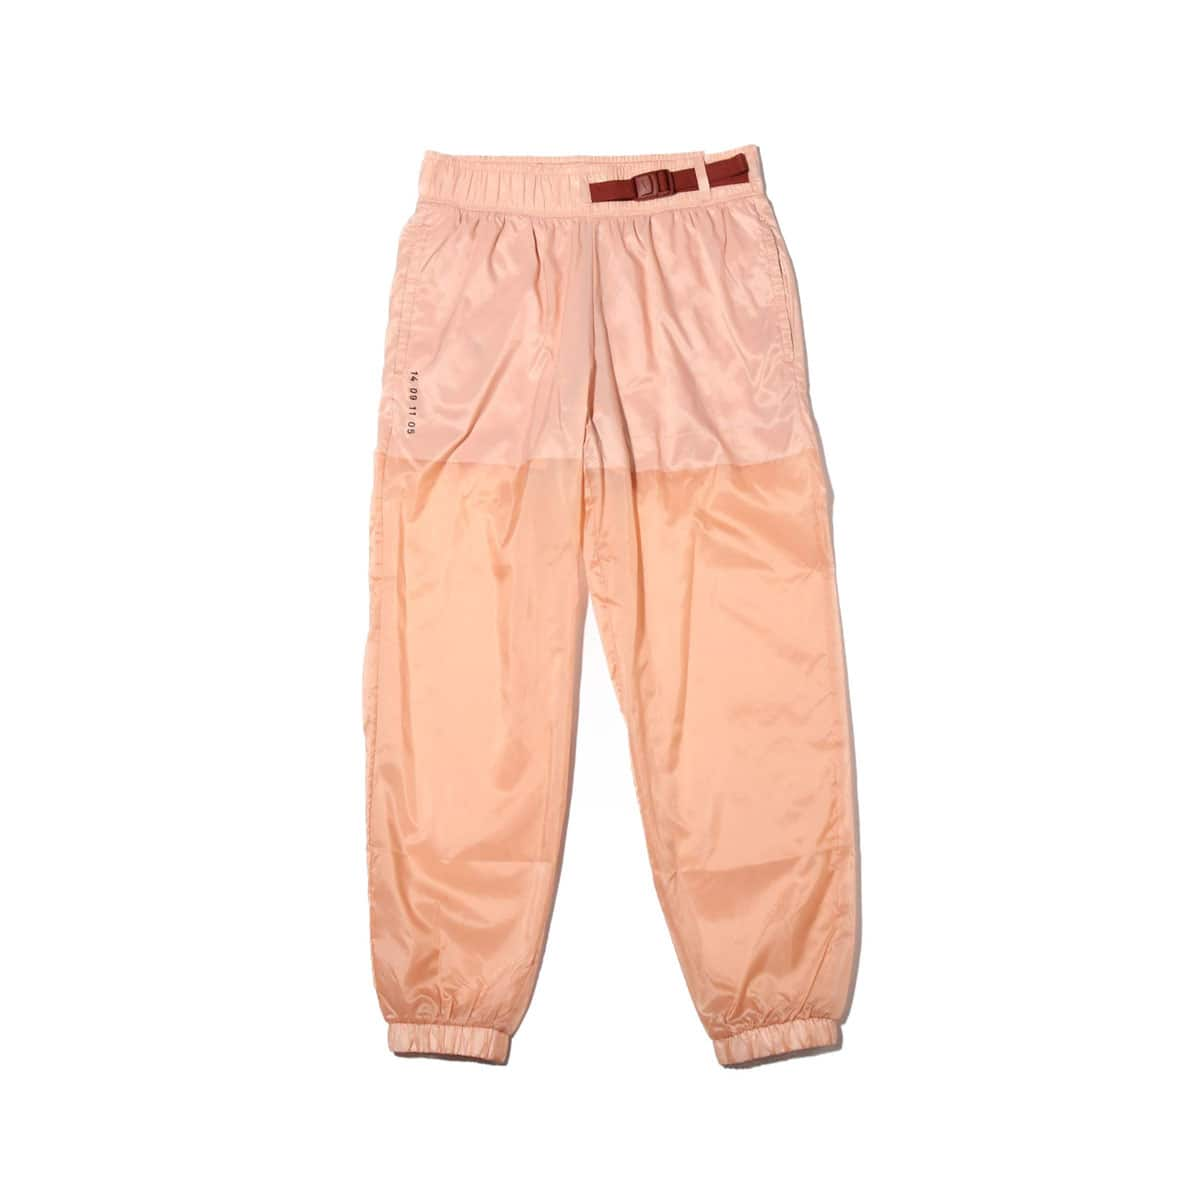 NIKE AS W NSW TCH PCK PANT ENG WVN ROSE GOLD/BLACK 19SU-S_photo_large